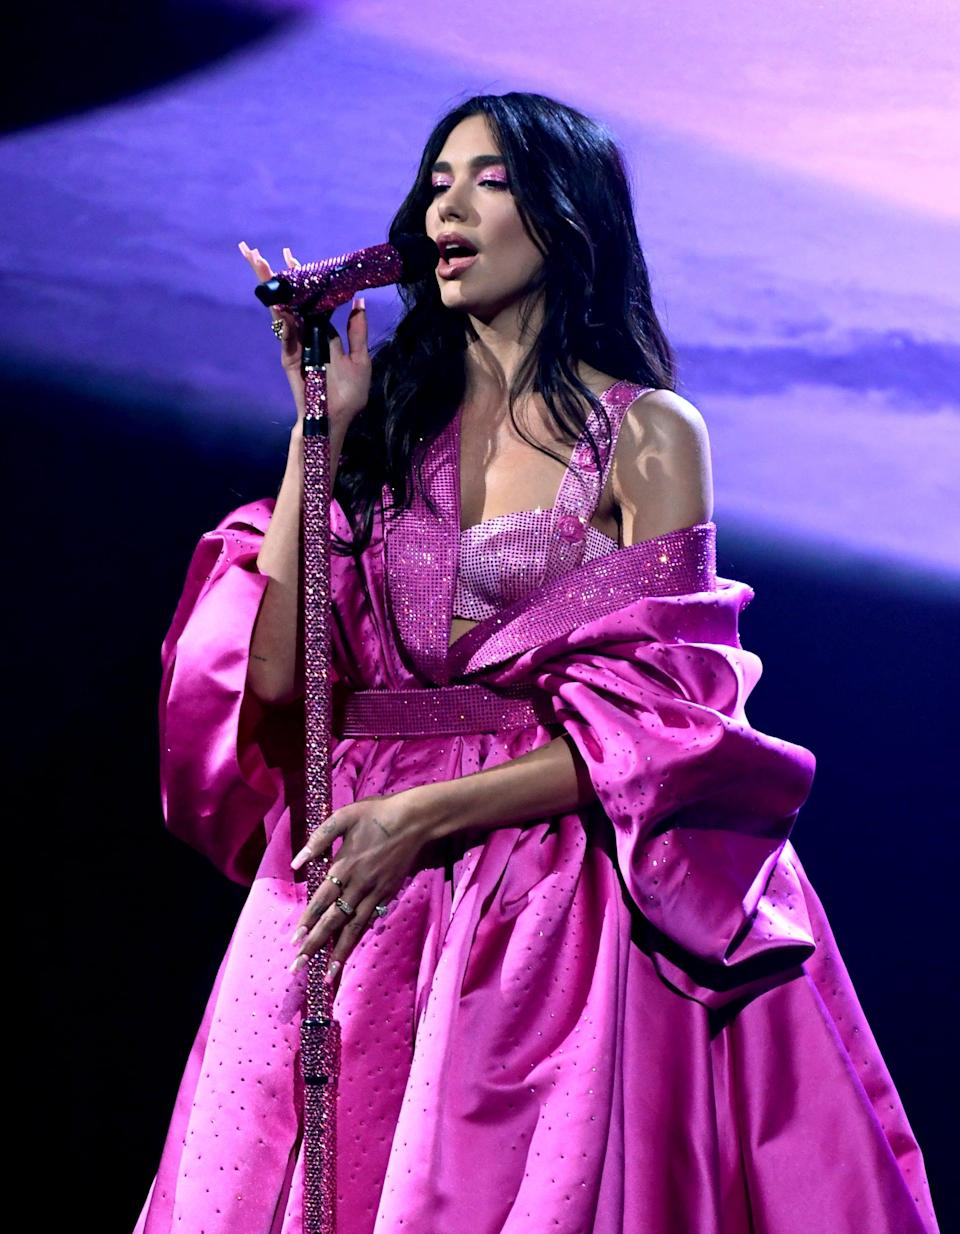 <p>Dua Lipa performed in a custom Atelier Versace gown fit for a princess.</p>